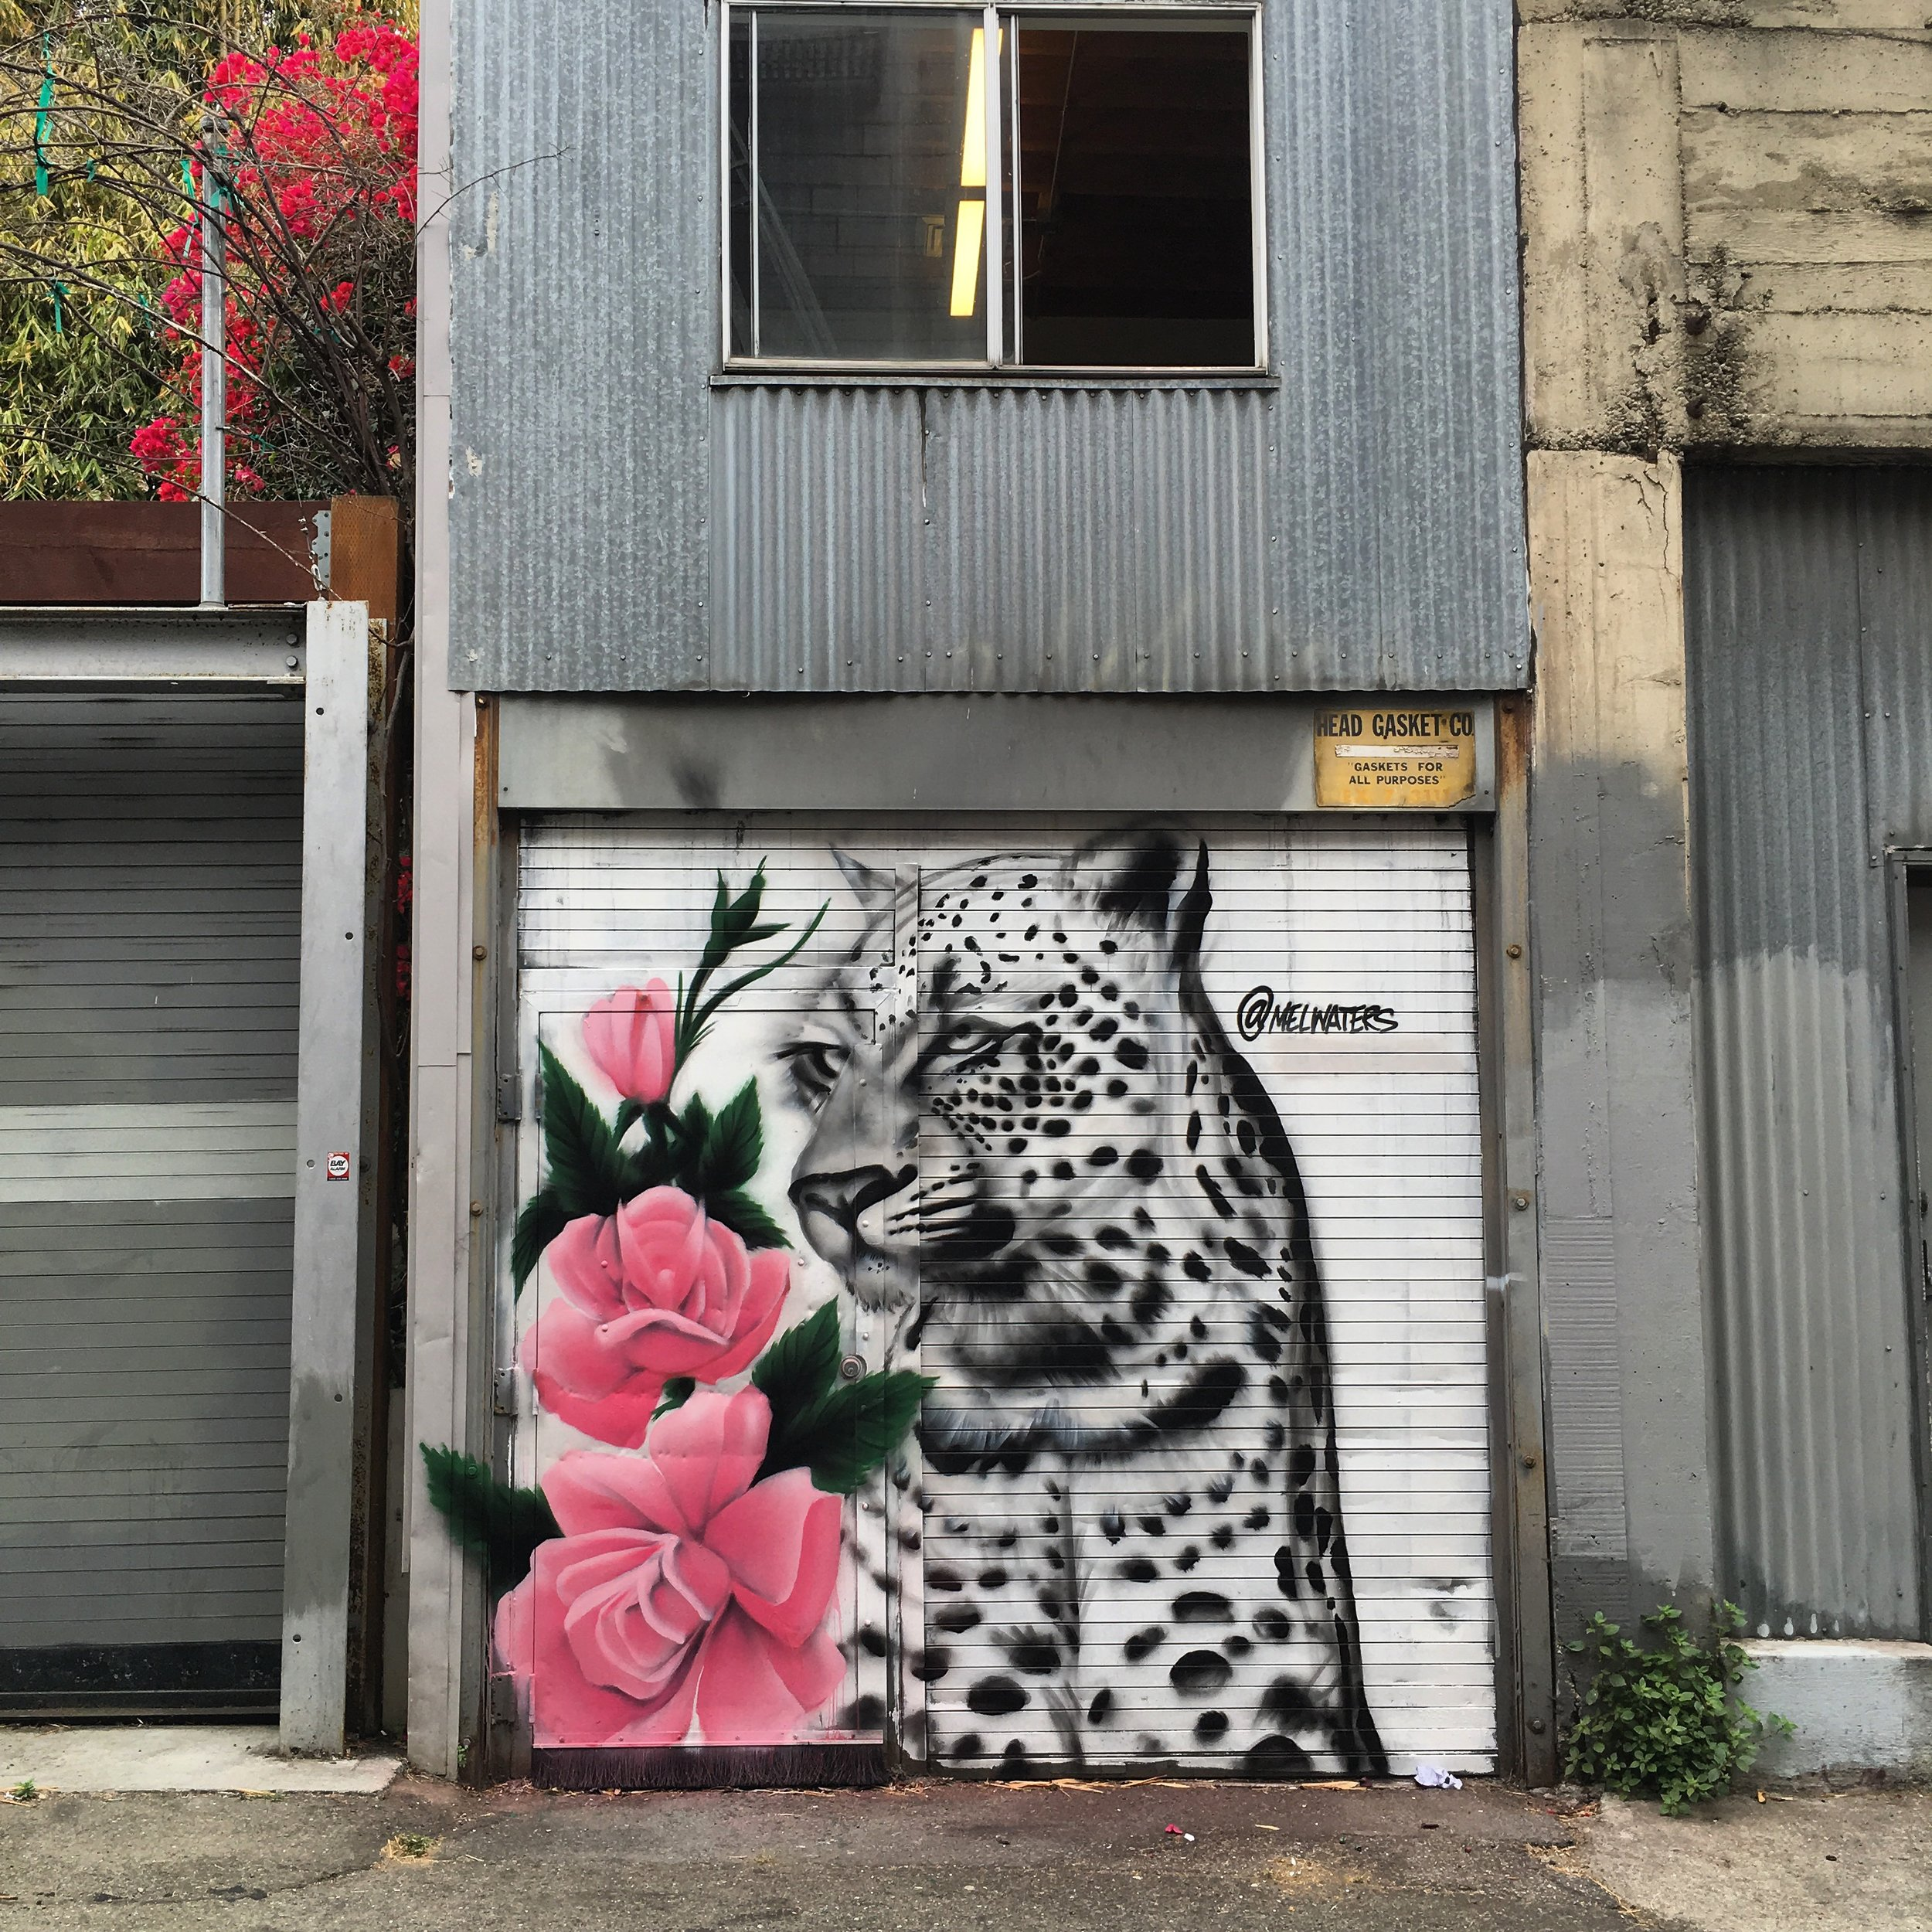 Snow Leopard and Roses